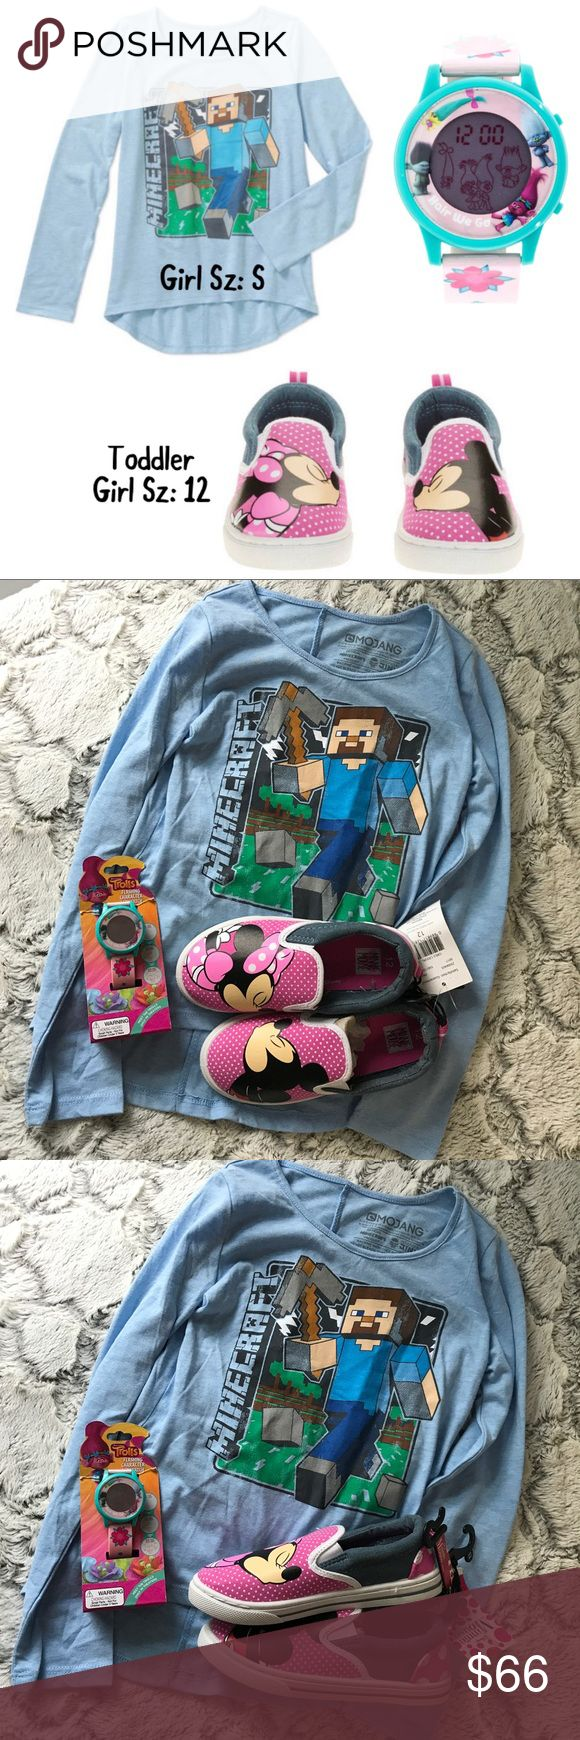 💫NWT💐SUMMER Girl Mix/Match 3Piece Set🐳 New Girl 3-Piece Mix And Match Set includes: 1 New Girl MineCraft Long Sleeve Shirt Sz: S, 1 New Toddler Girl Minnie Mouse Shoe Sz: 12 and 1 New Girl Trolls Flashing Character LCD Watch.  All Brand New w Tags and in Box. Disney Accessories